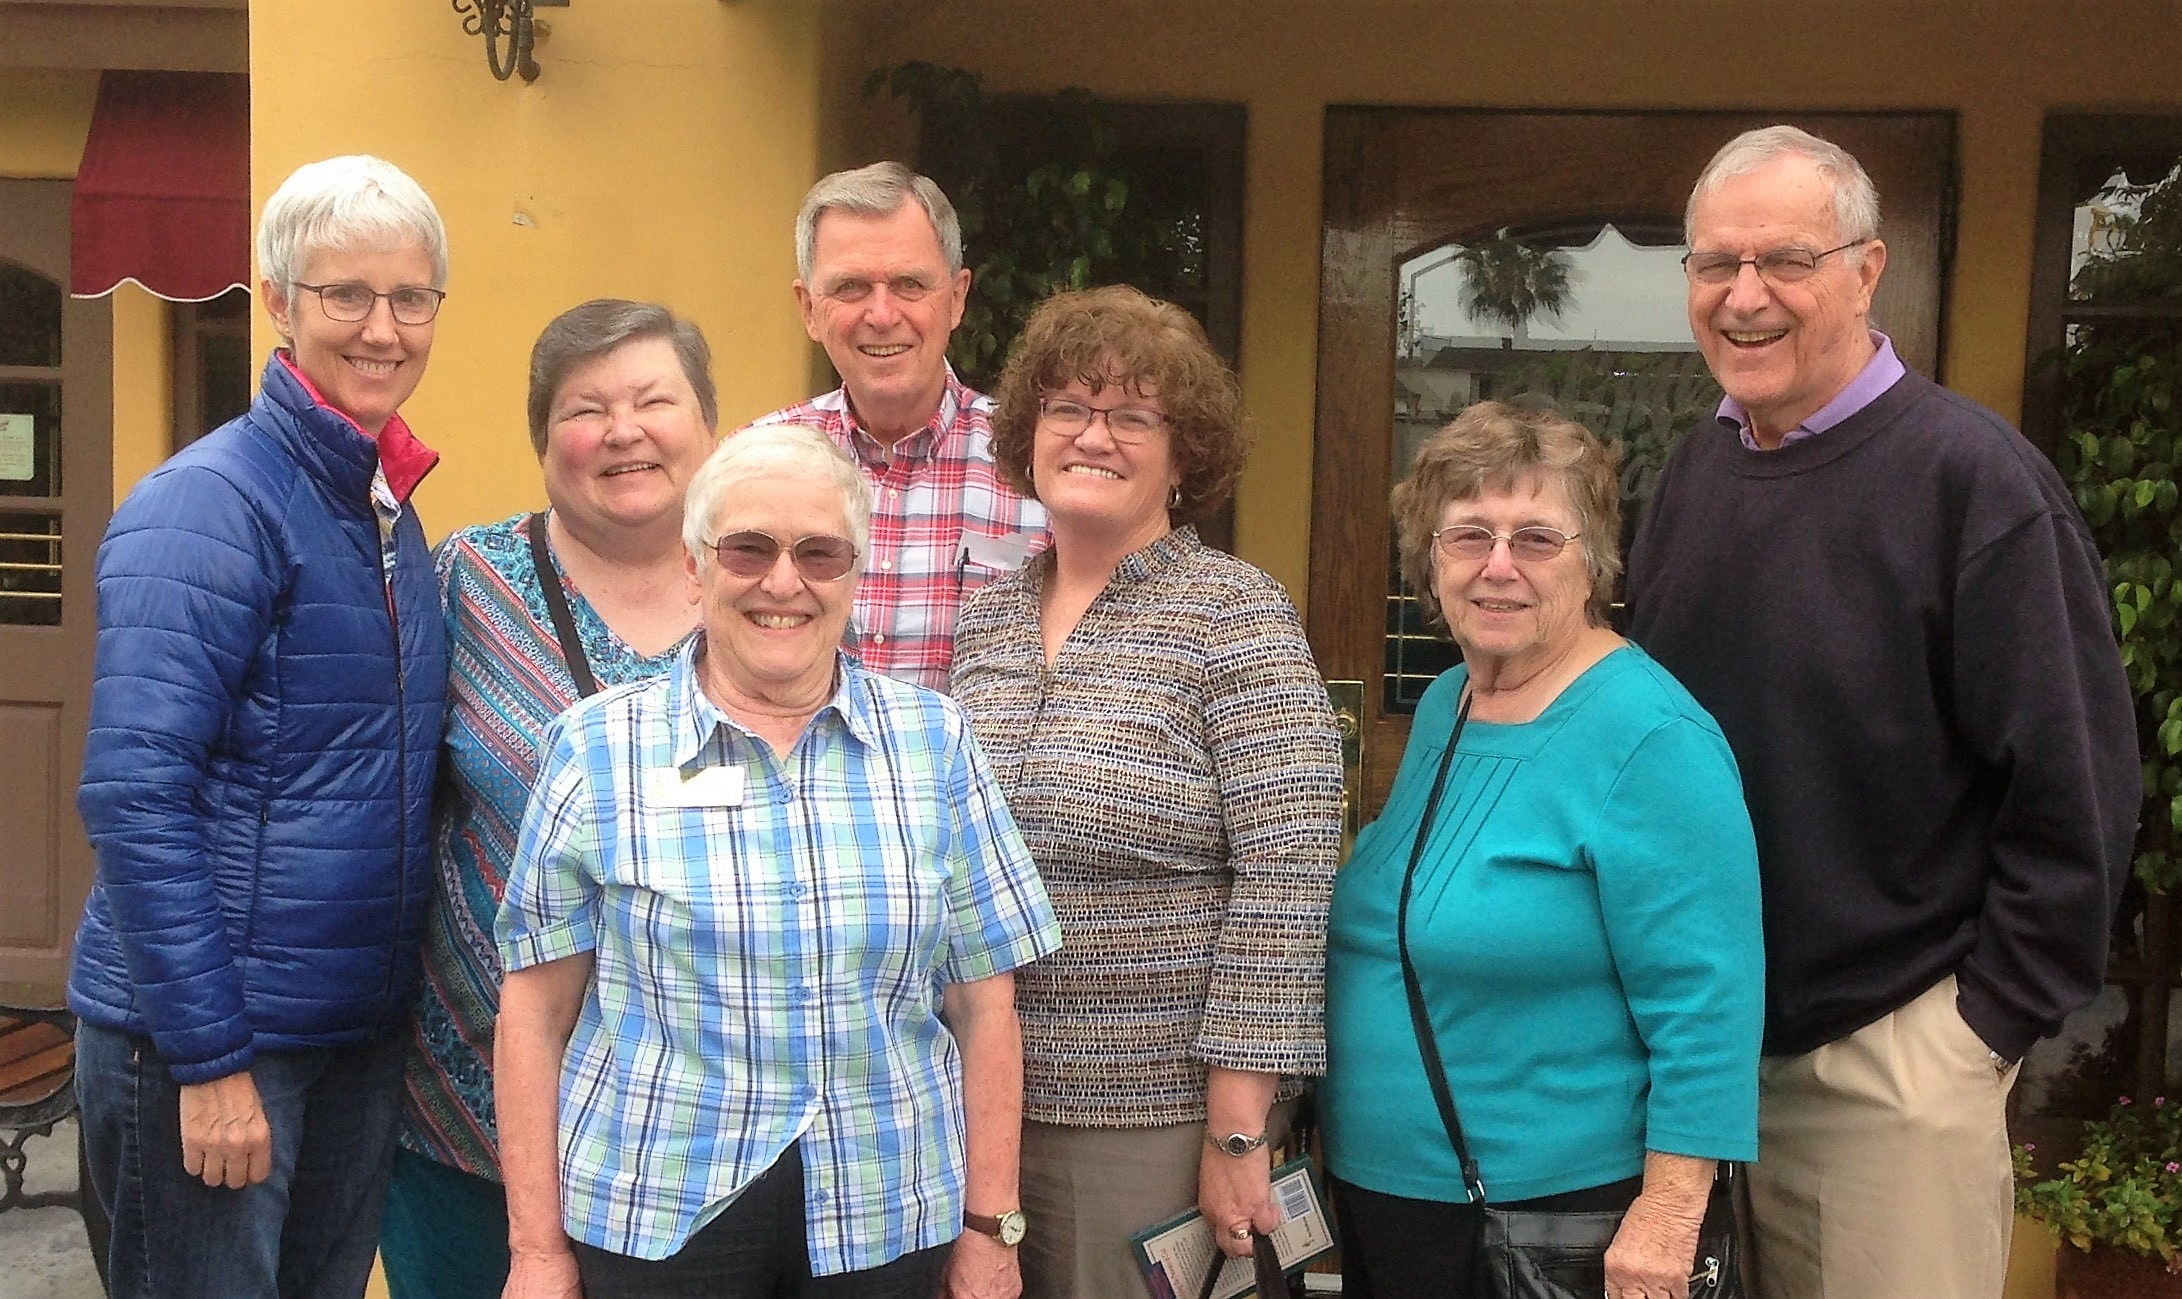 I enjoyed many yummy meals with loving long-term supporters like these from Garden Grove, CA.